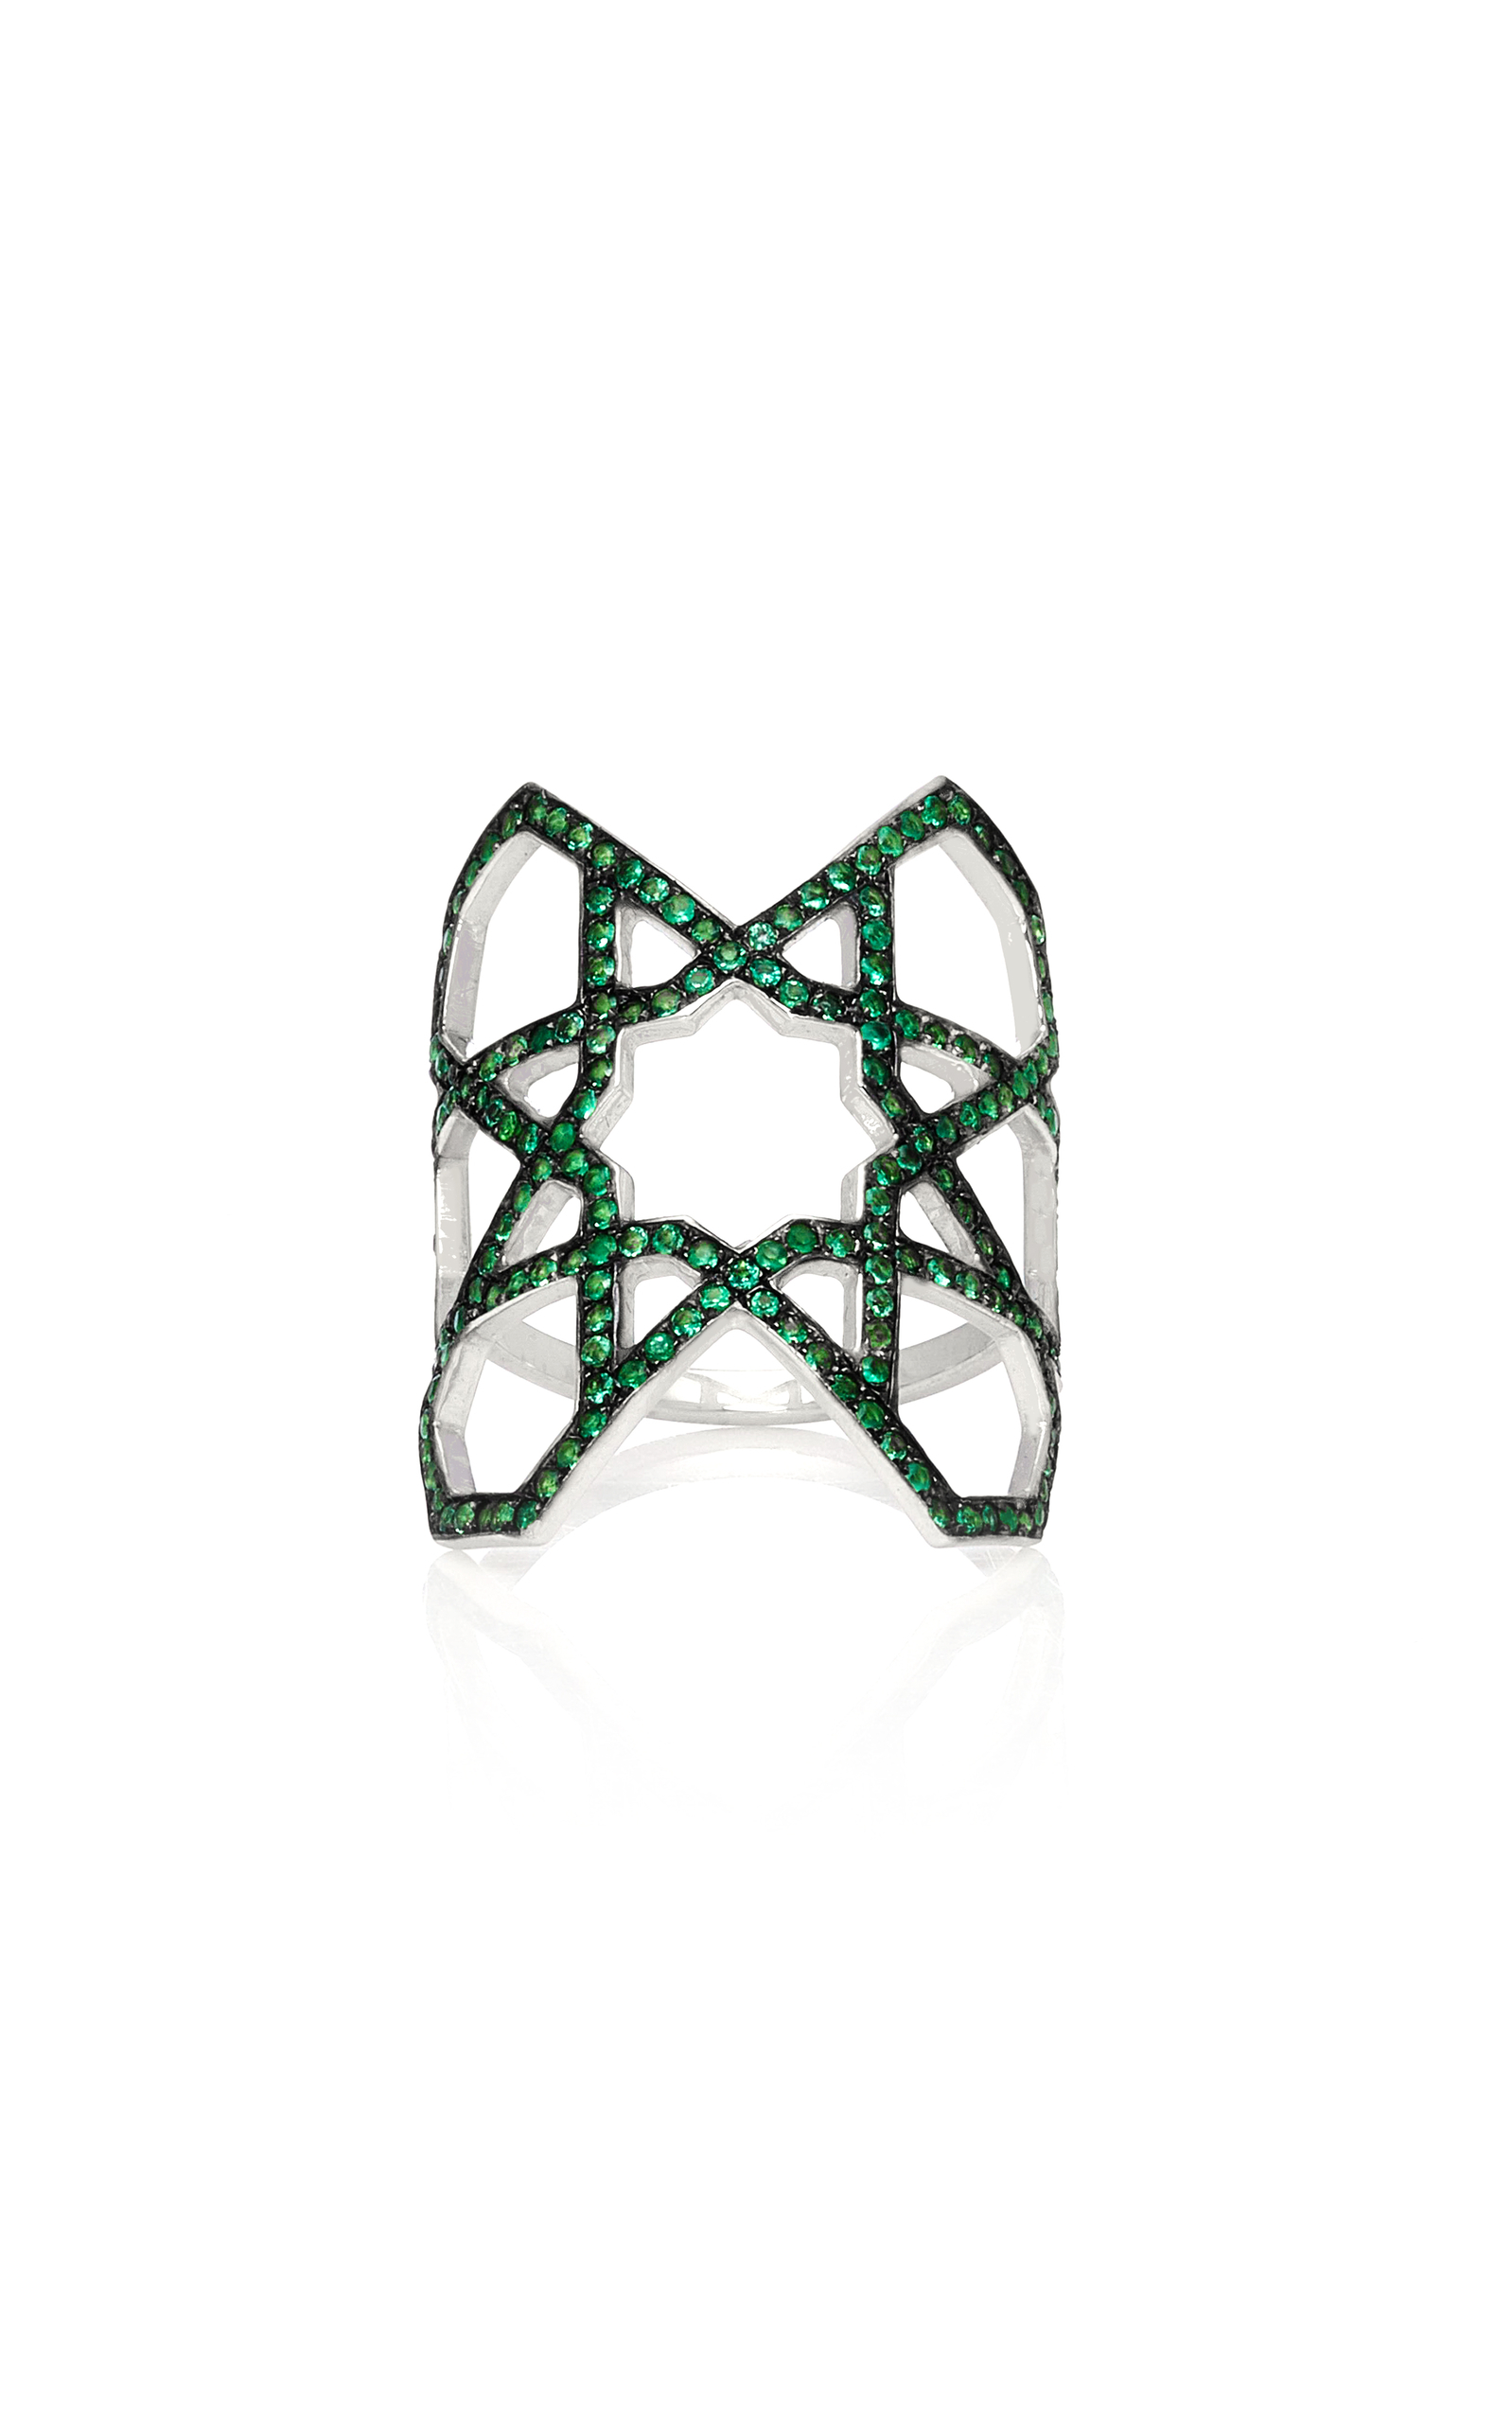 RALPH MASRI M'O Exclusive Arabesque Emerald Ring in Green